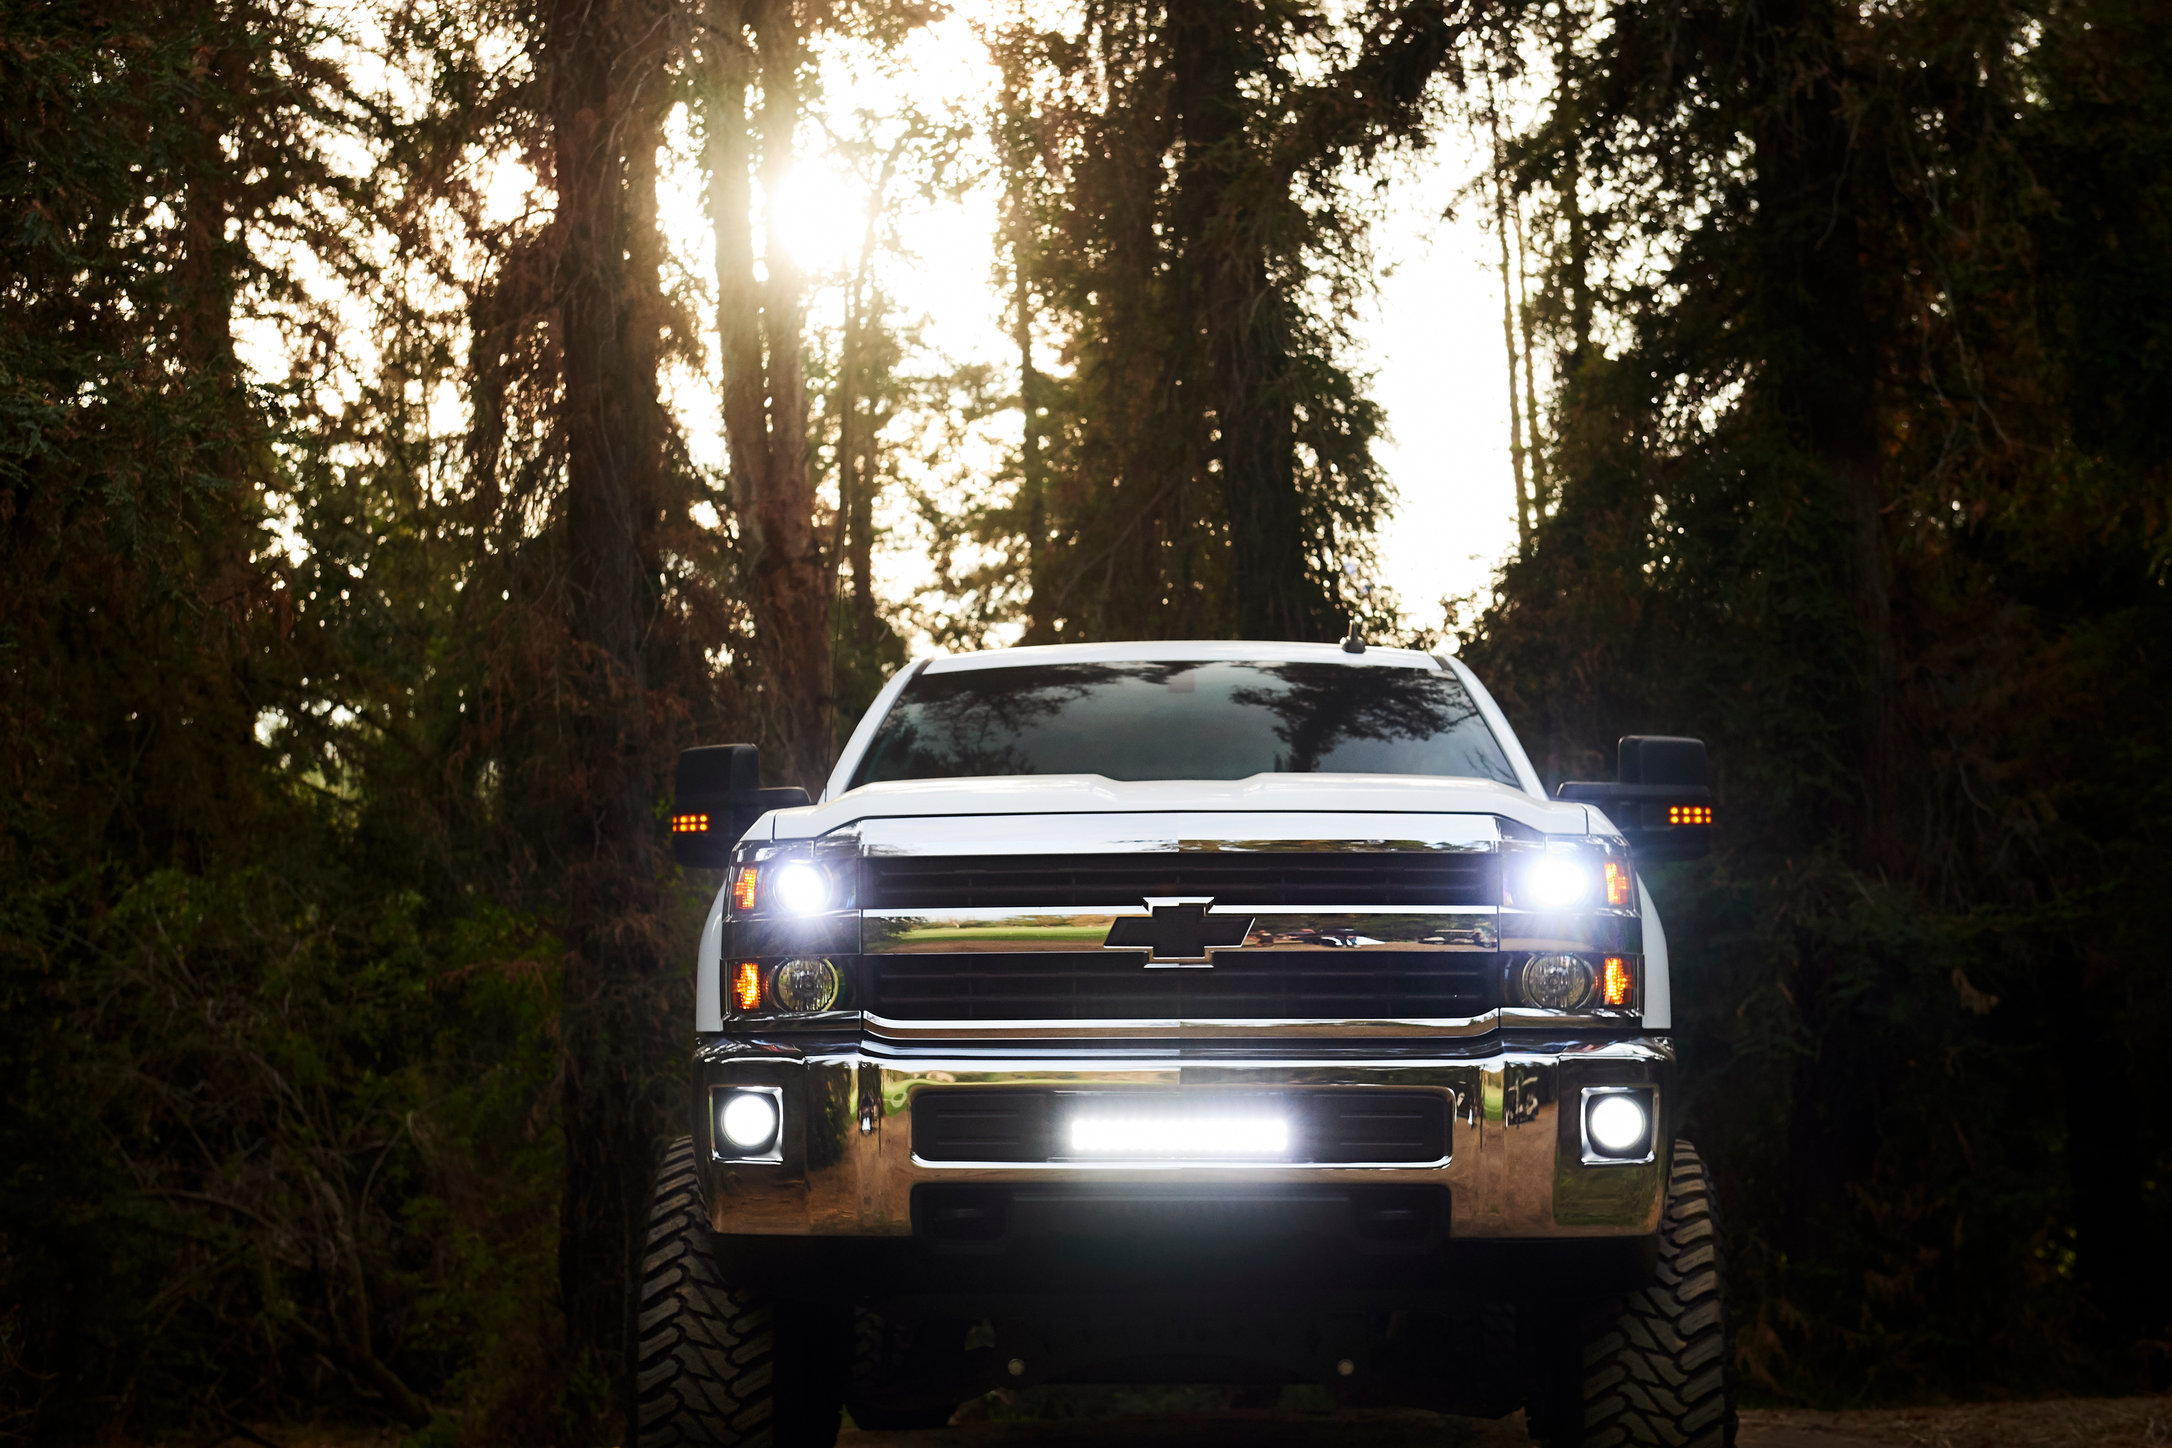 Motors_Make_Model_Chevy_Silverado_Hero-1733.jpg